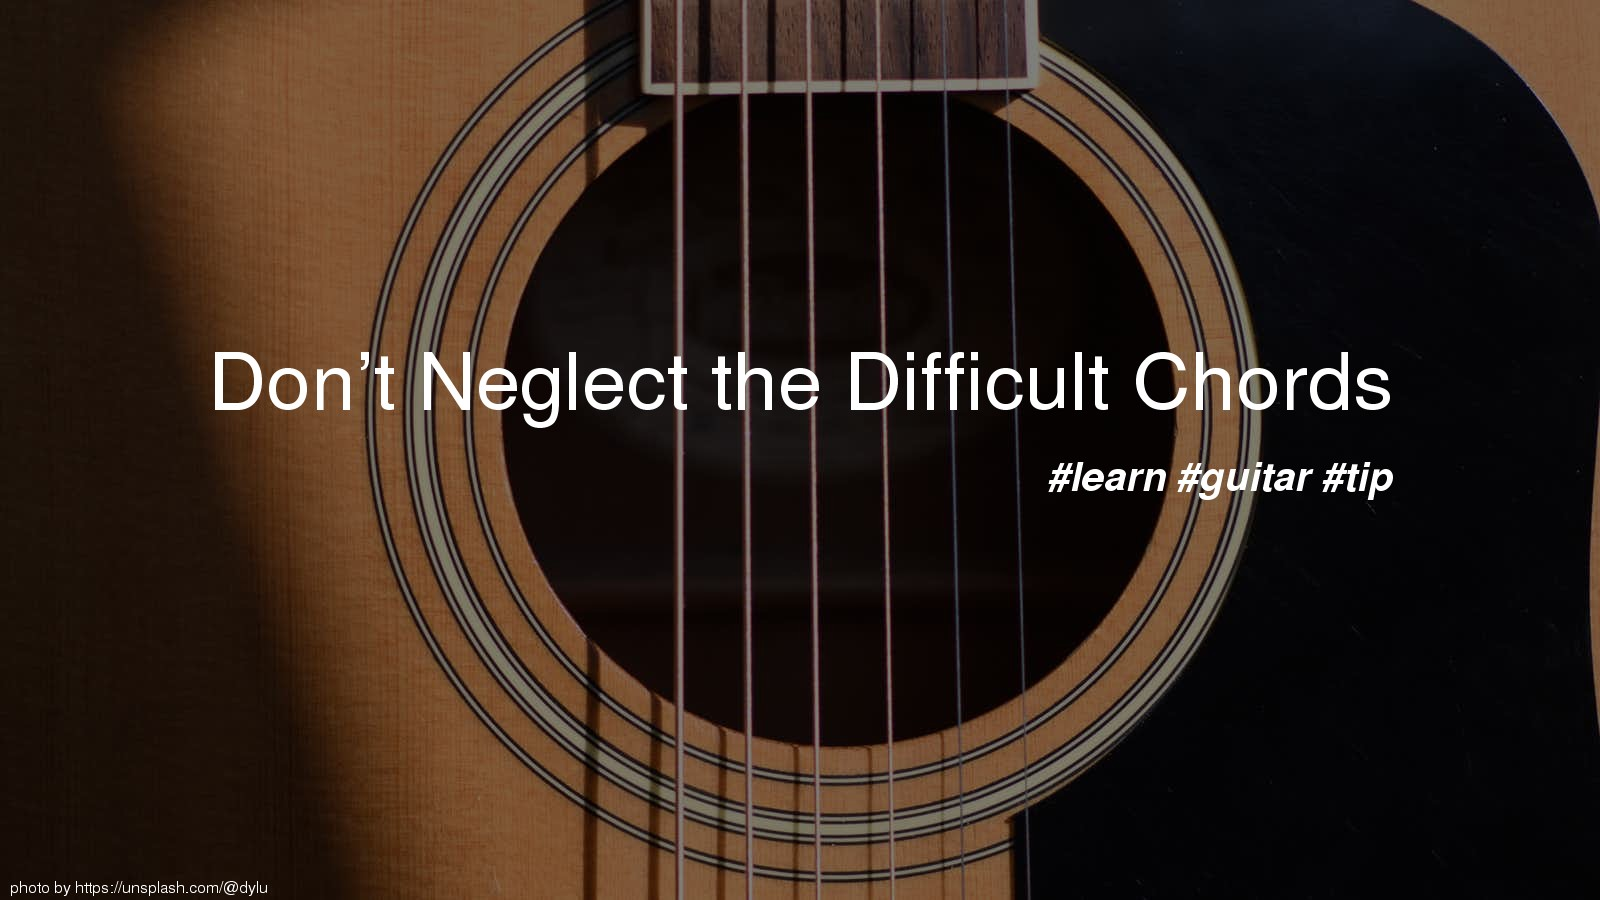 Don't Neglect the Difficult Chords